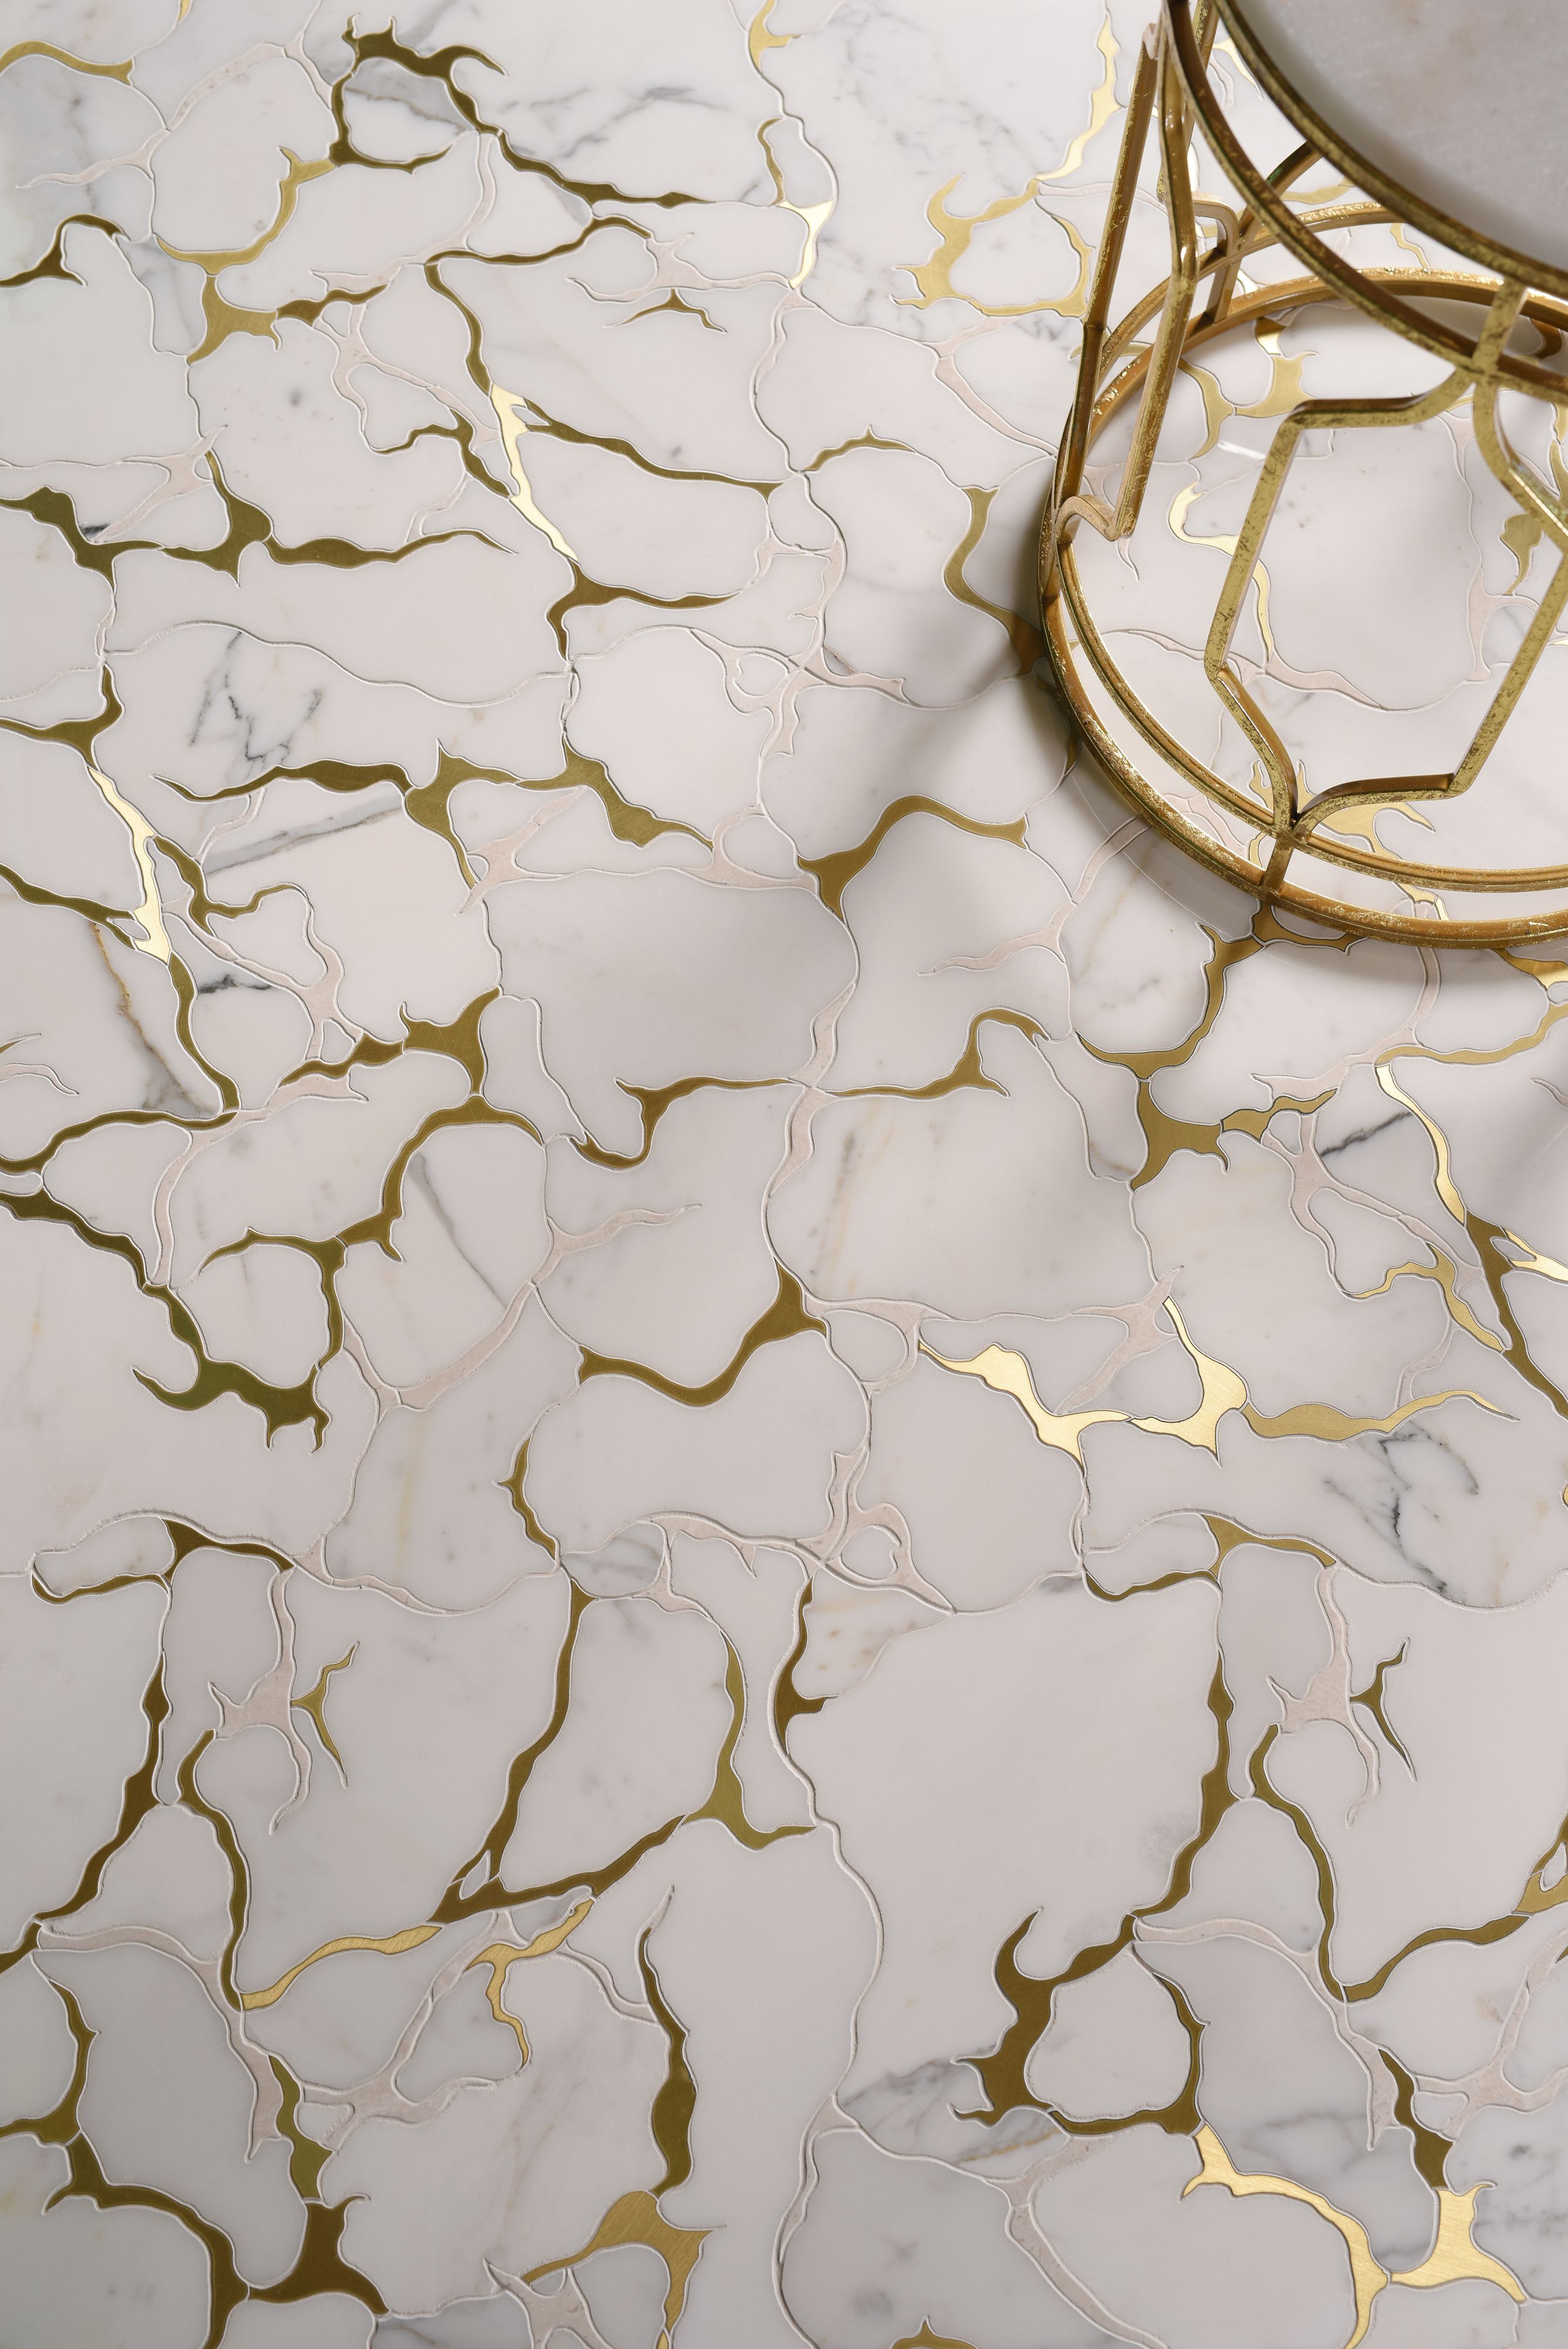 Gold Veined Marble Mosaic Floor Tile Marble Mosaic Floor Marble Tile Floor Mosaic Floor Tile